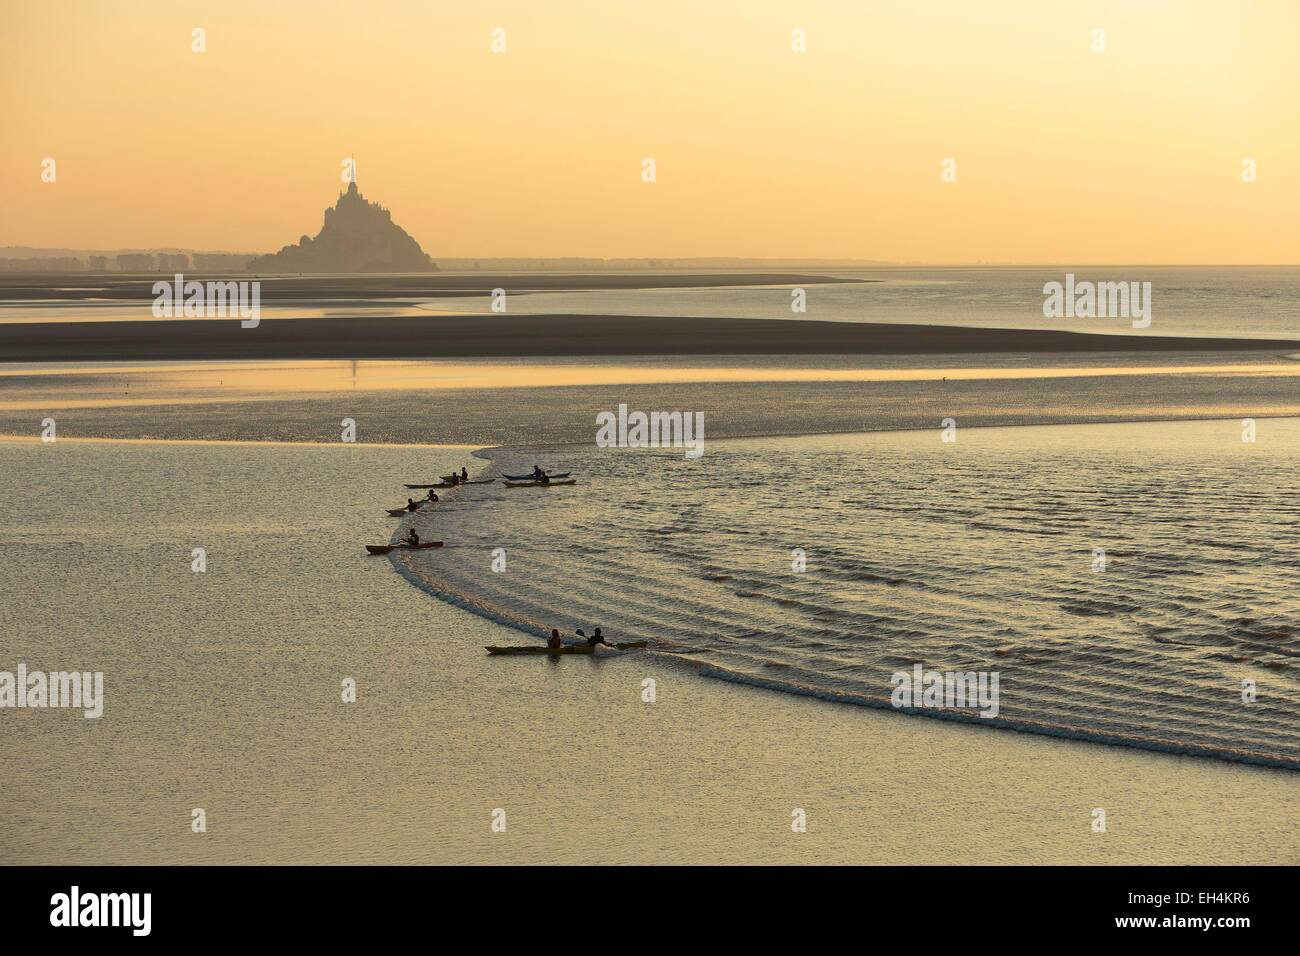 France, Manche, Mont Saint Michel bay, listed as World Heritage by UNESCO, a kayakists riding the Mascaret wave - Stock Image